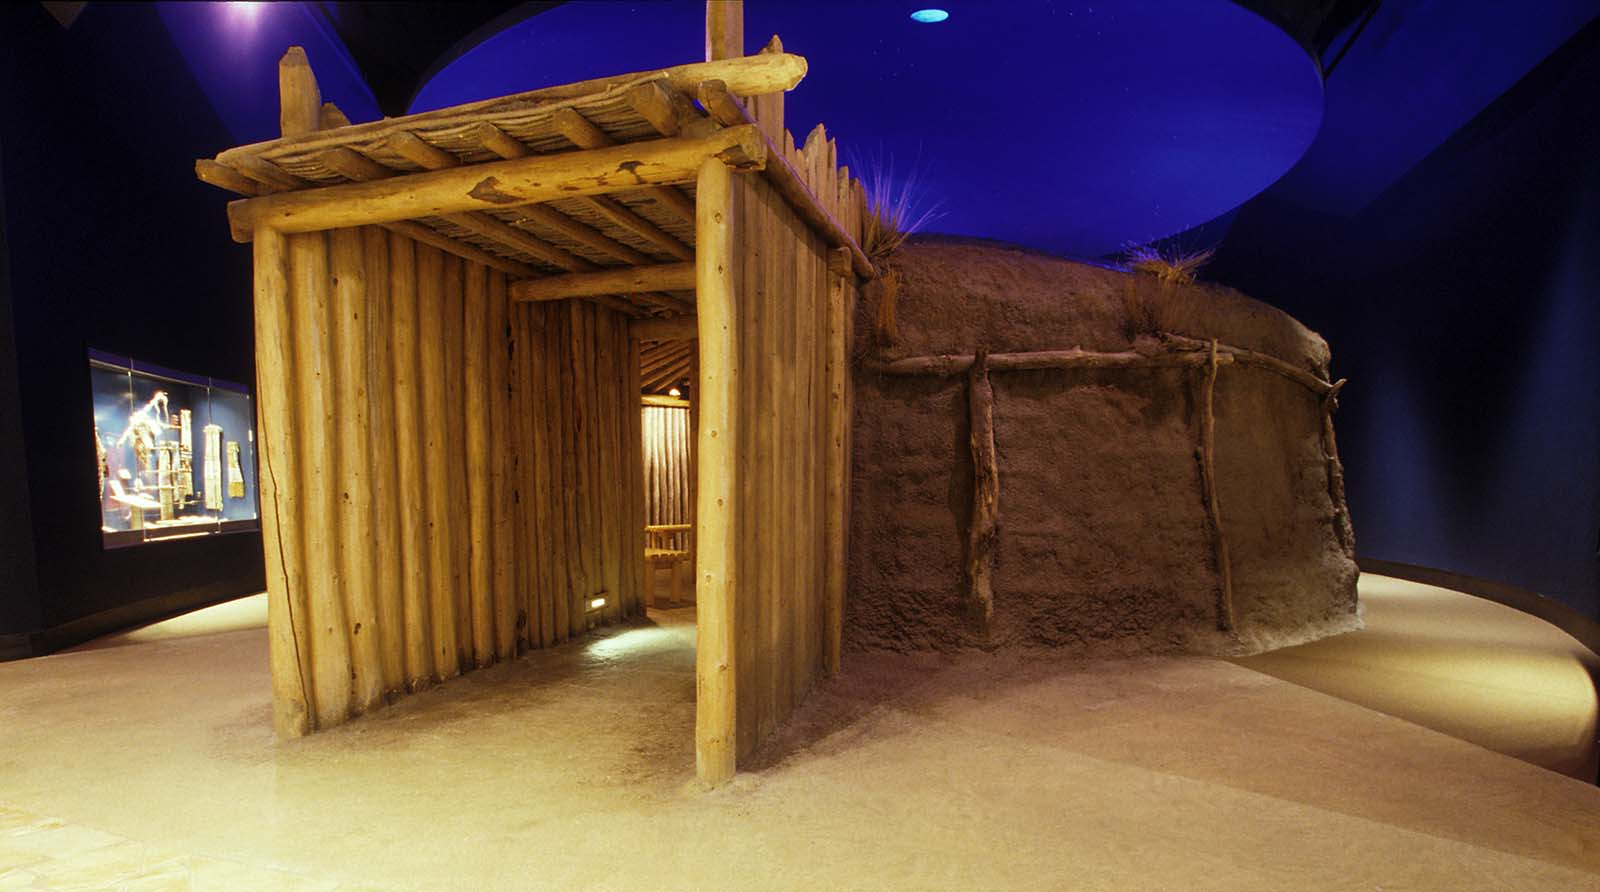 Earth lodge exhibit in the Plains Indian Museum.